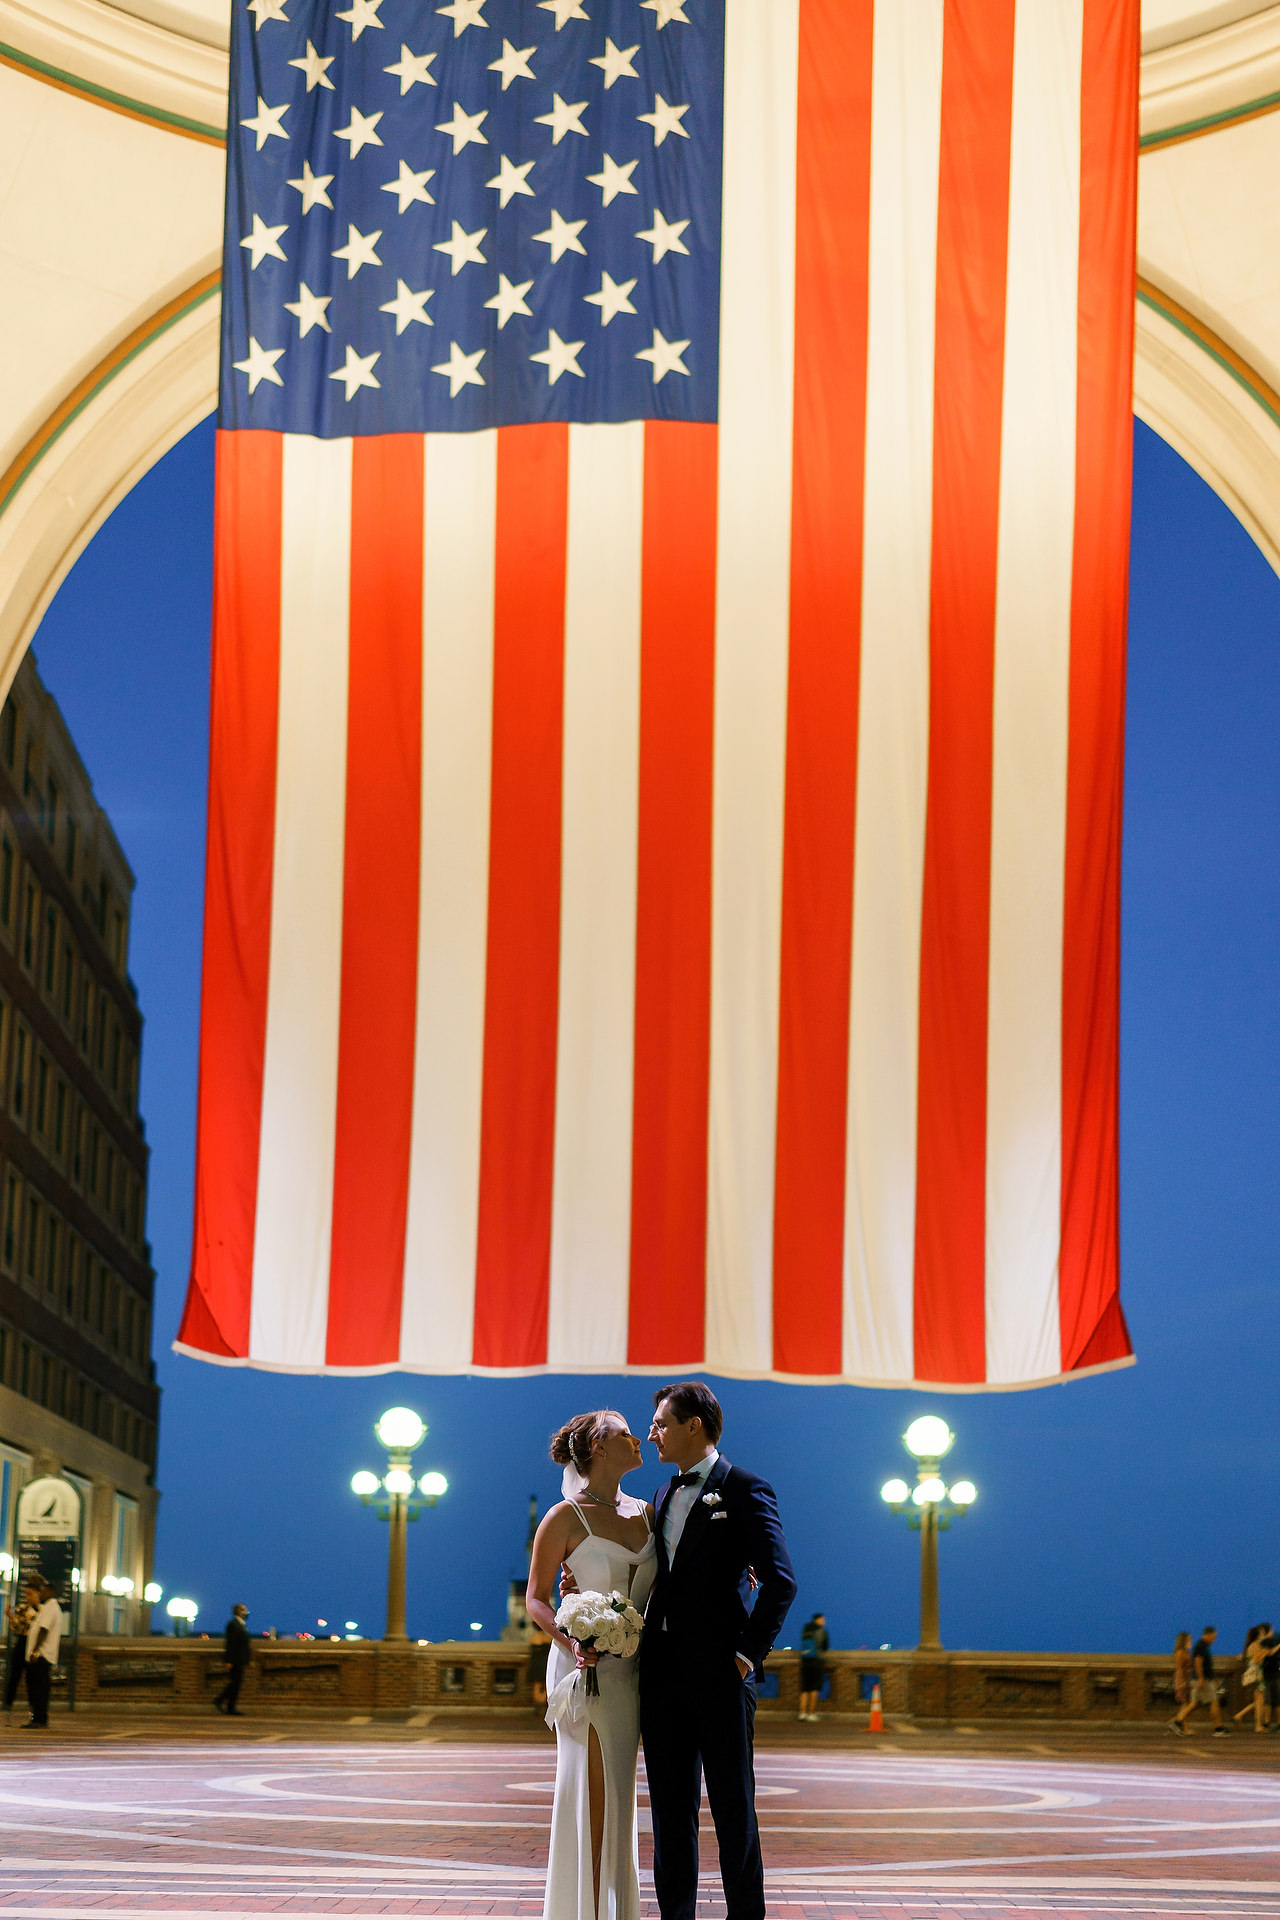 Boston Waterfront Harbor Hotel Weddings | The sun sets on their wedding day under a huge USA flag